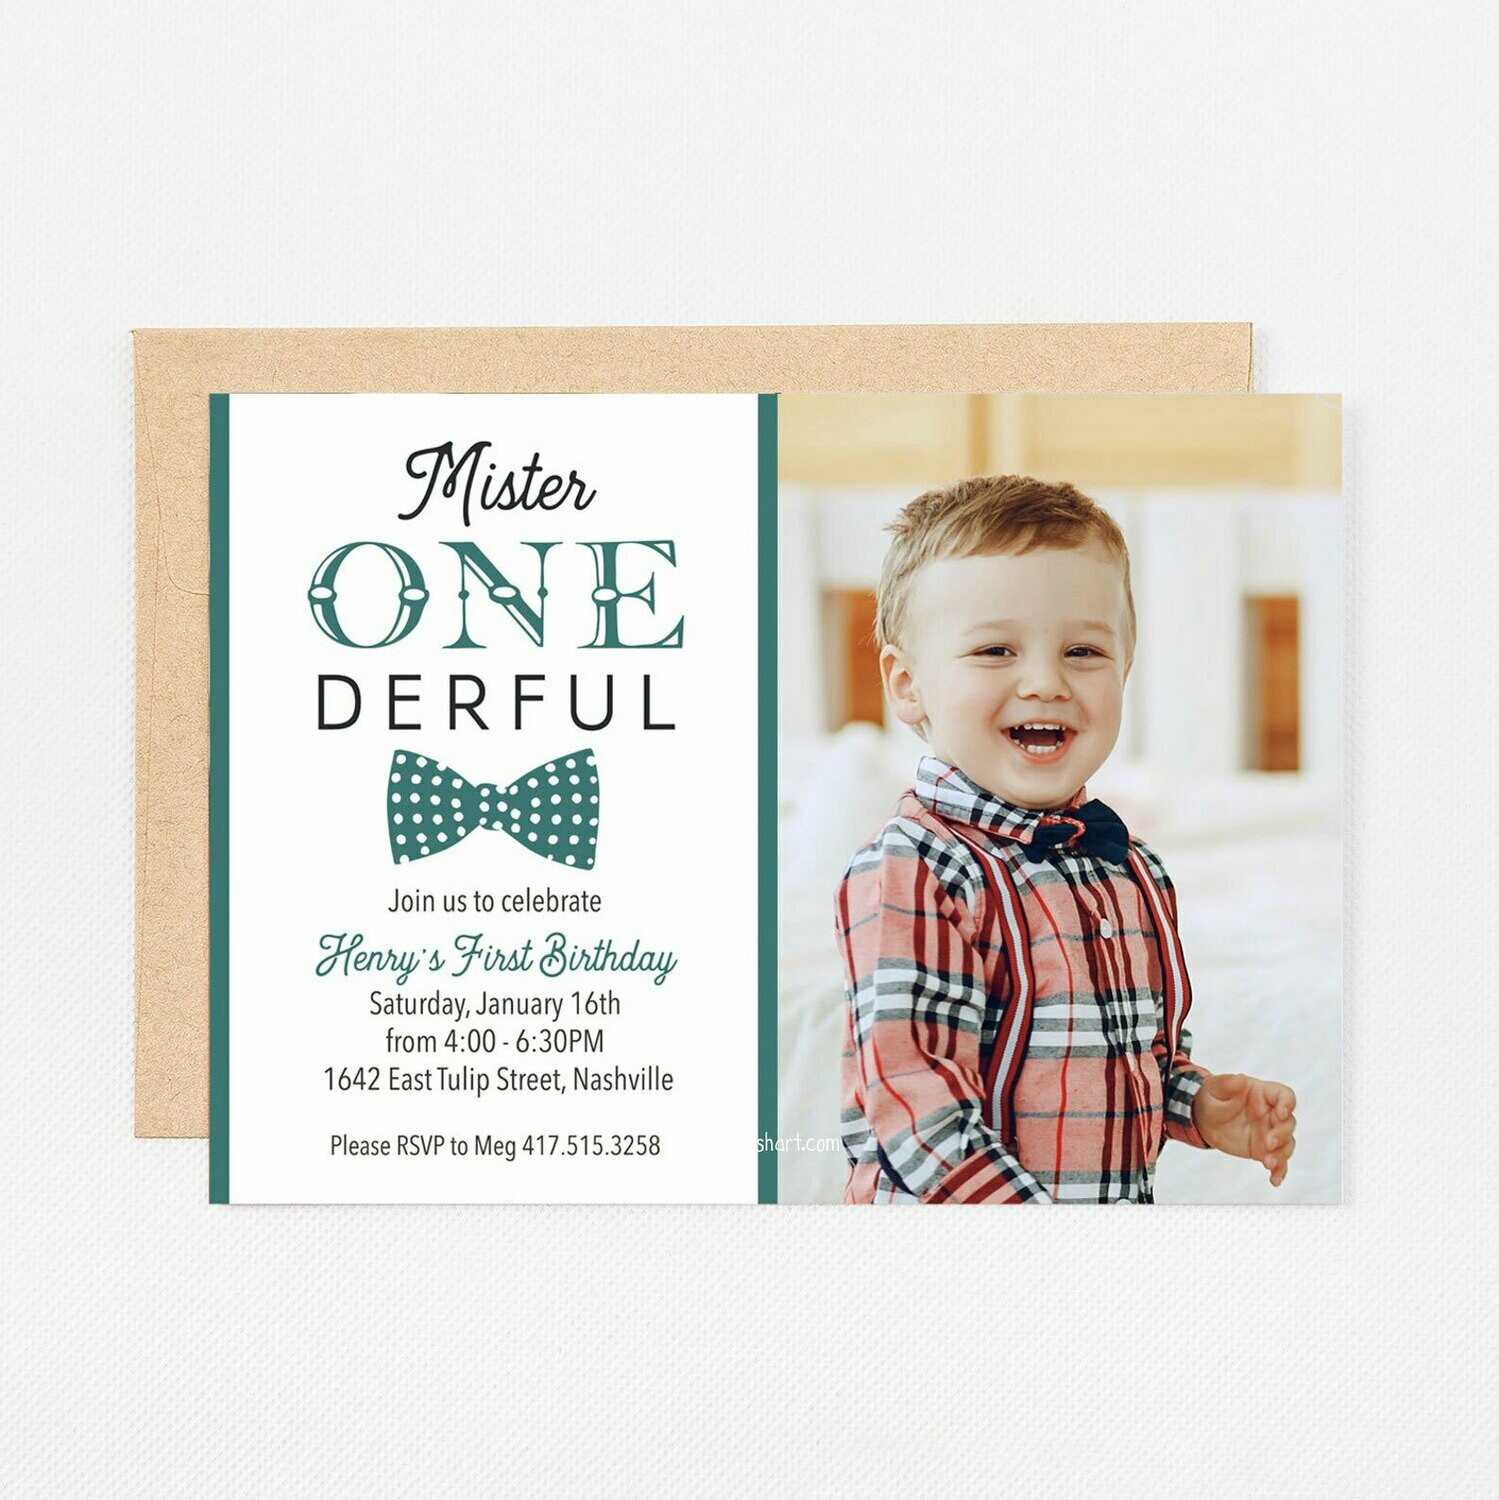 Green Mister ONEderful Photo Invitation - Digital or Printed